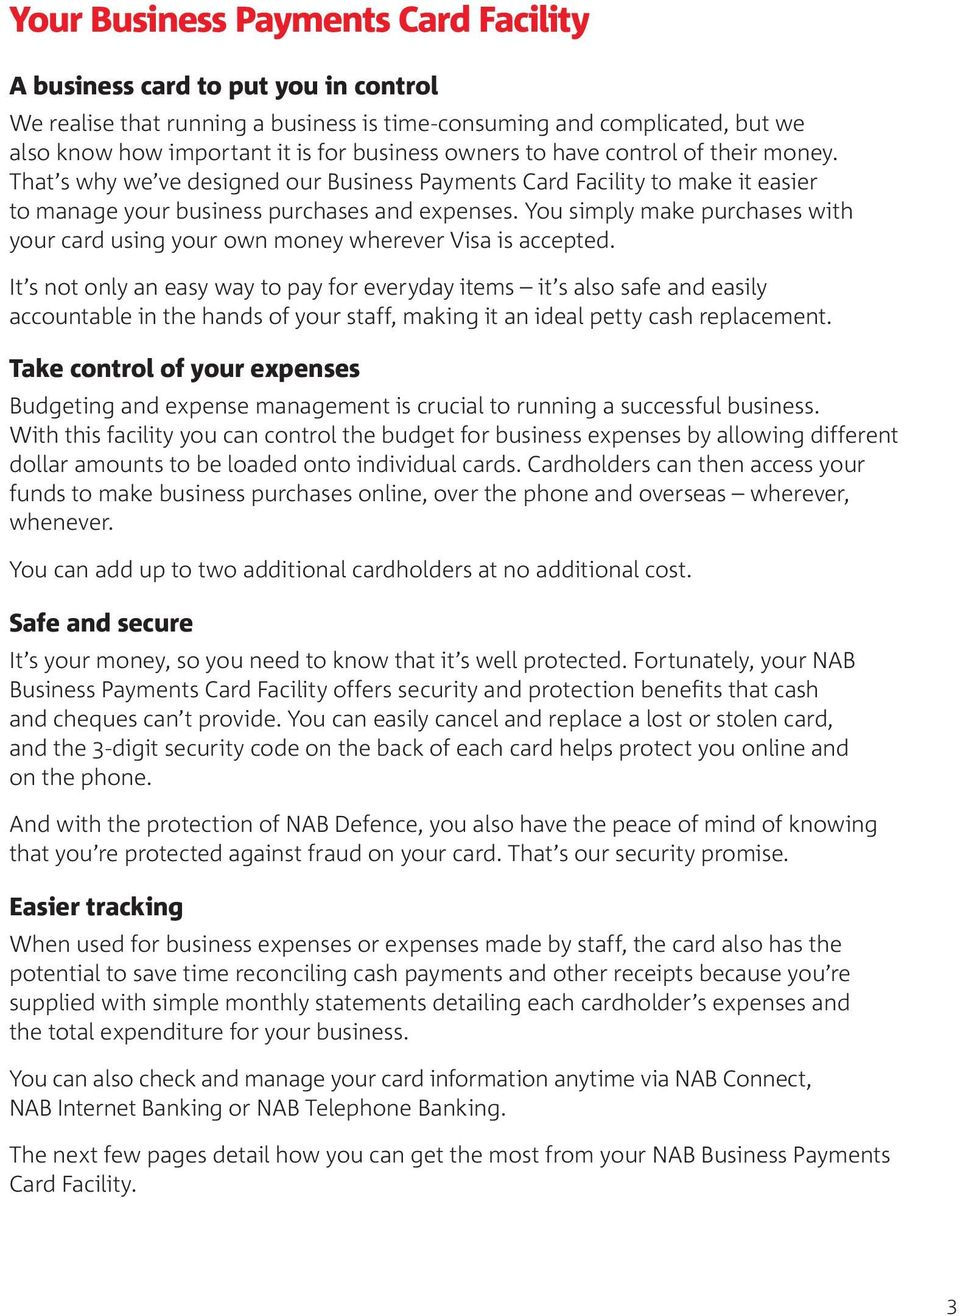 Essential Information  NAB Business Payments Card  - PDF